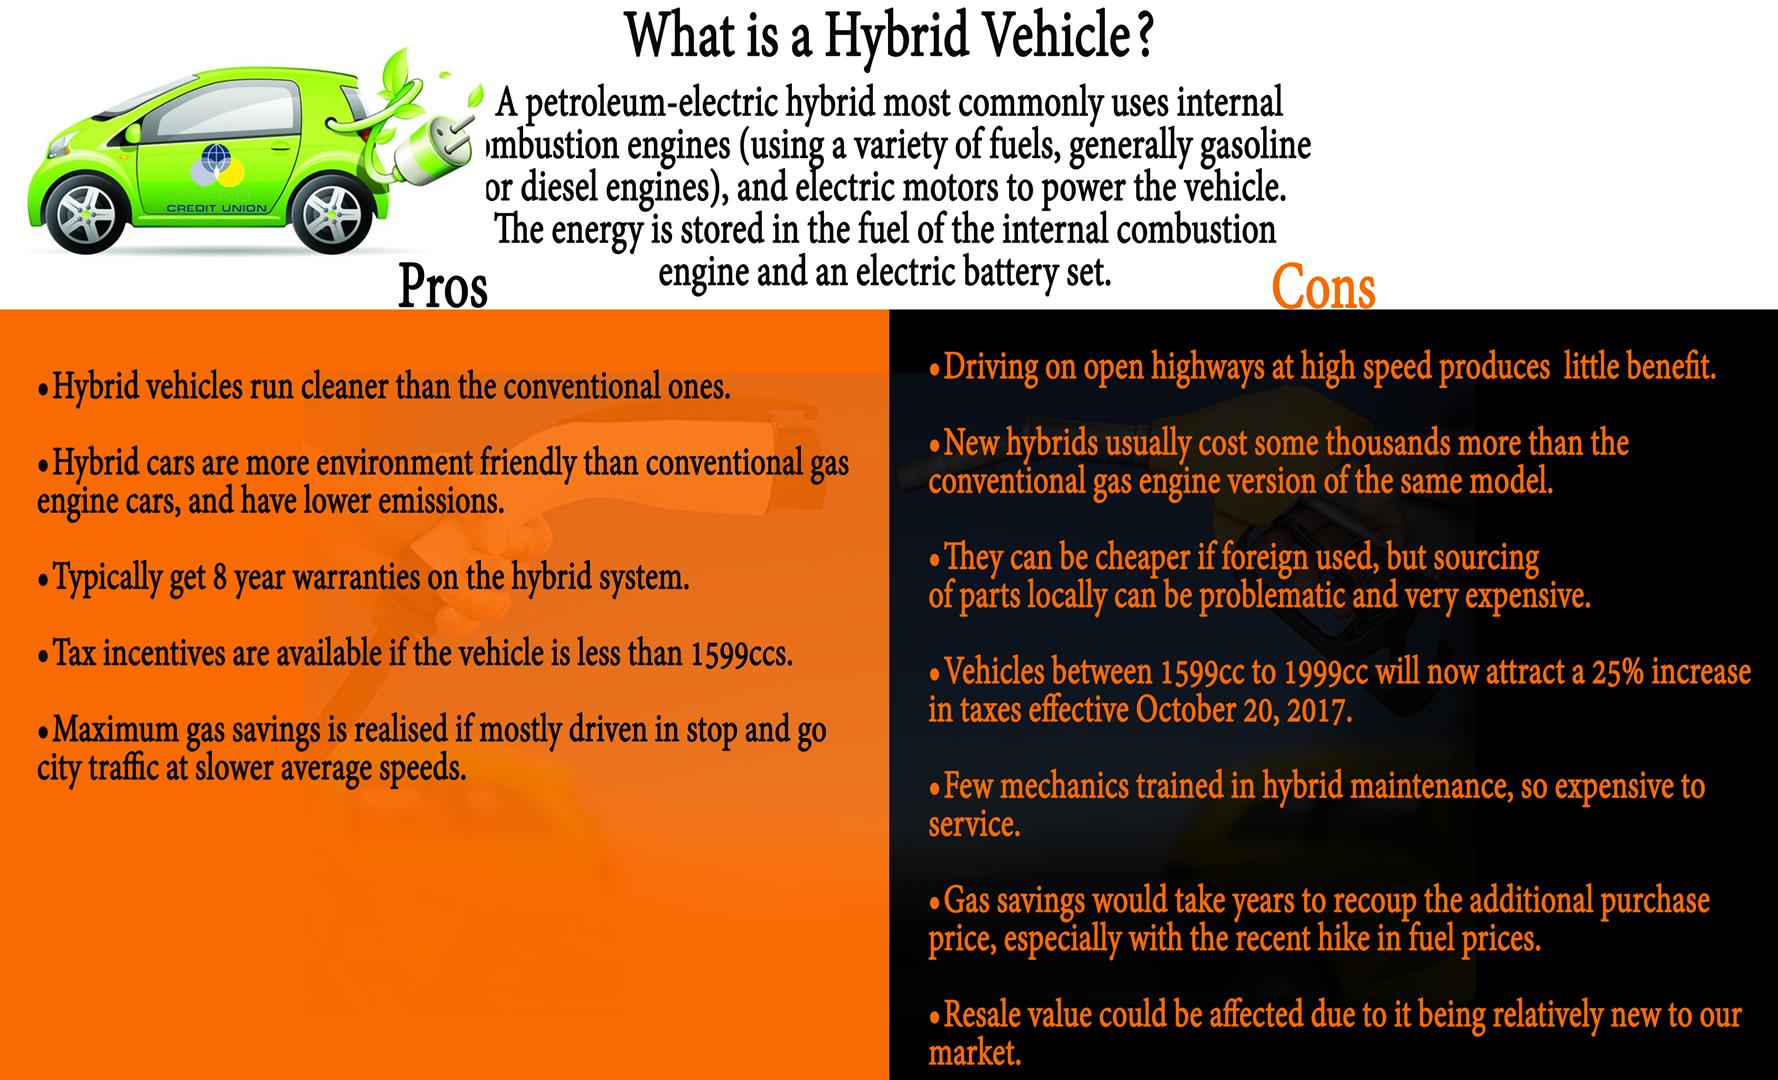 001 Pros And Cons Of A Hybrid Vehicle